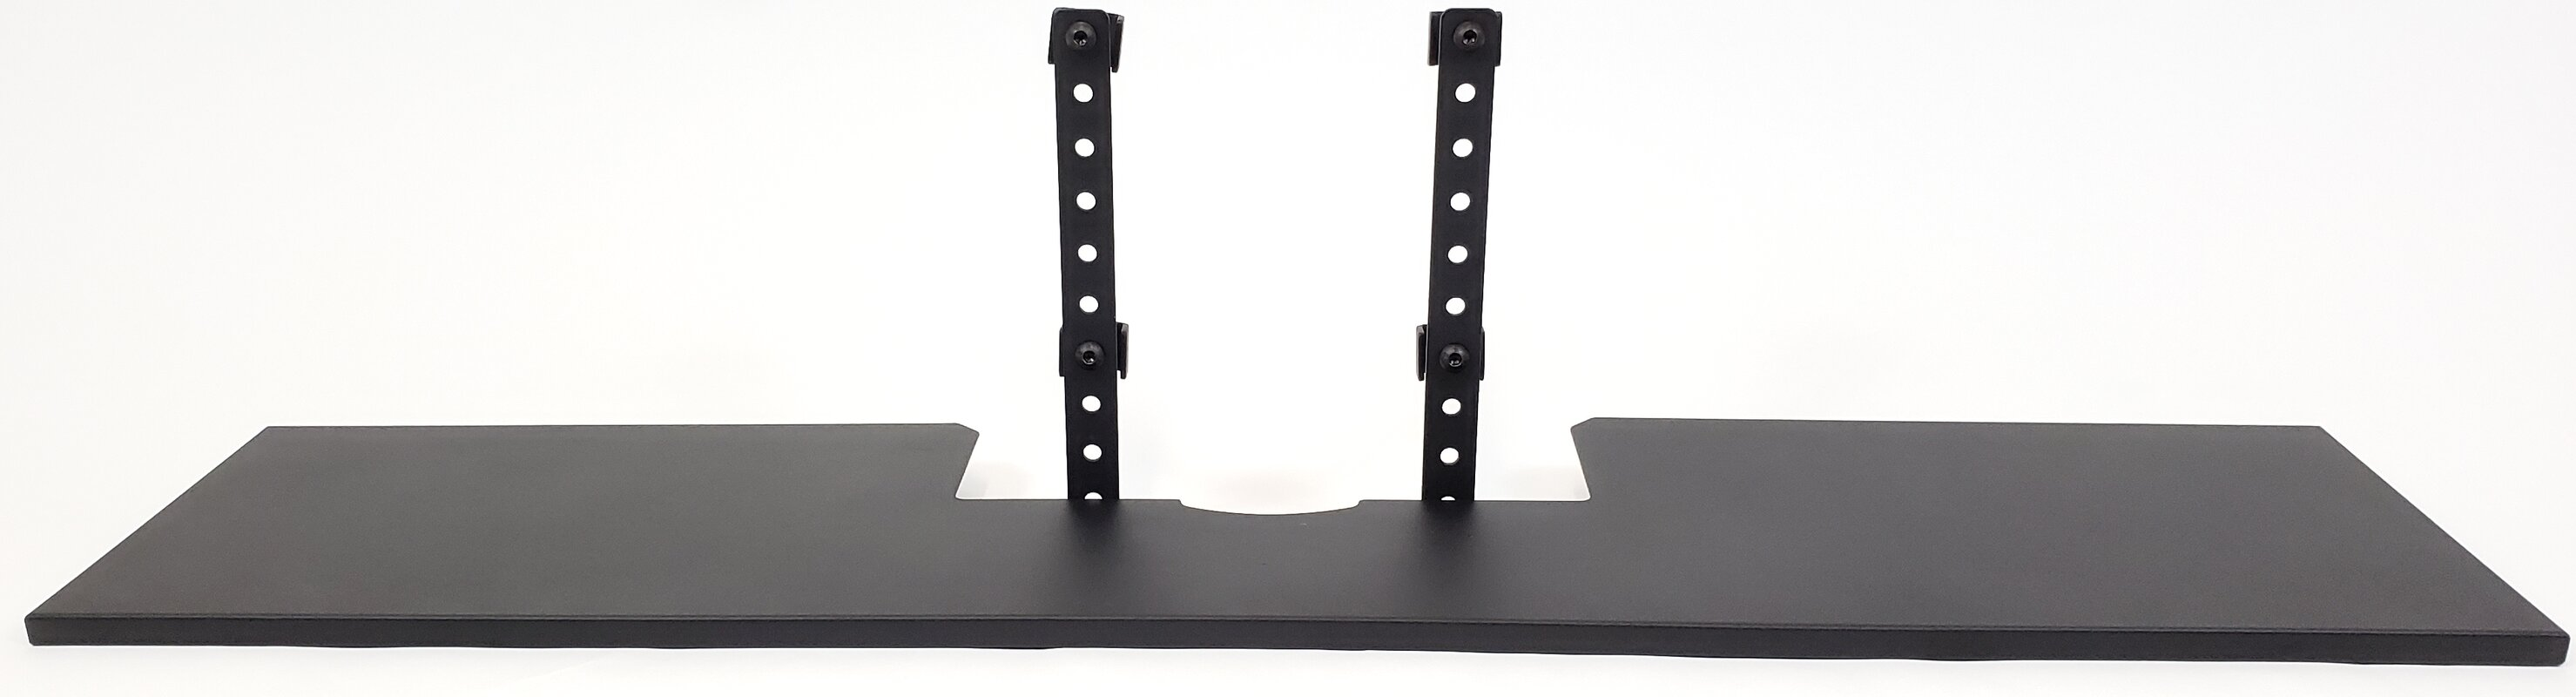 Component Shelf for TV Lifts & TV Lift Cabinets